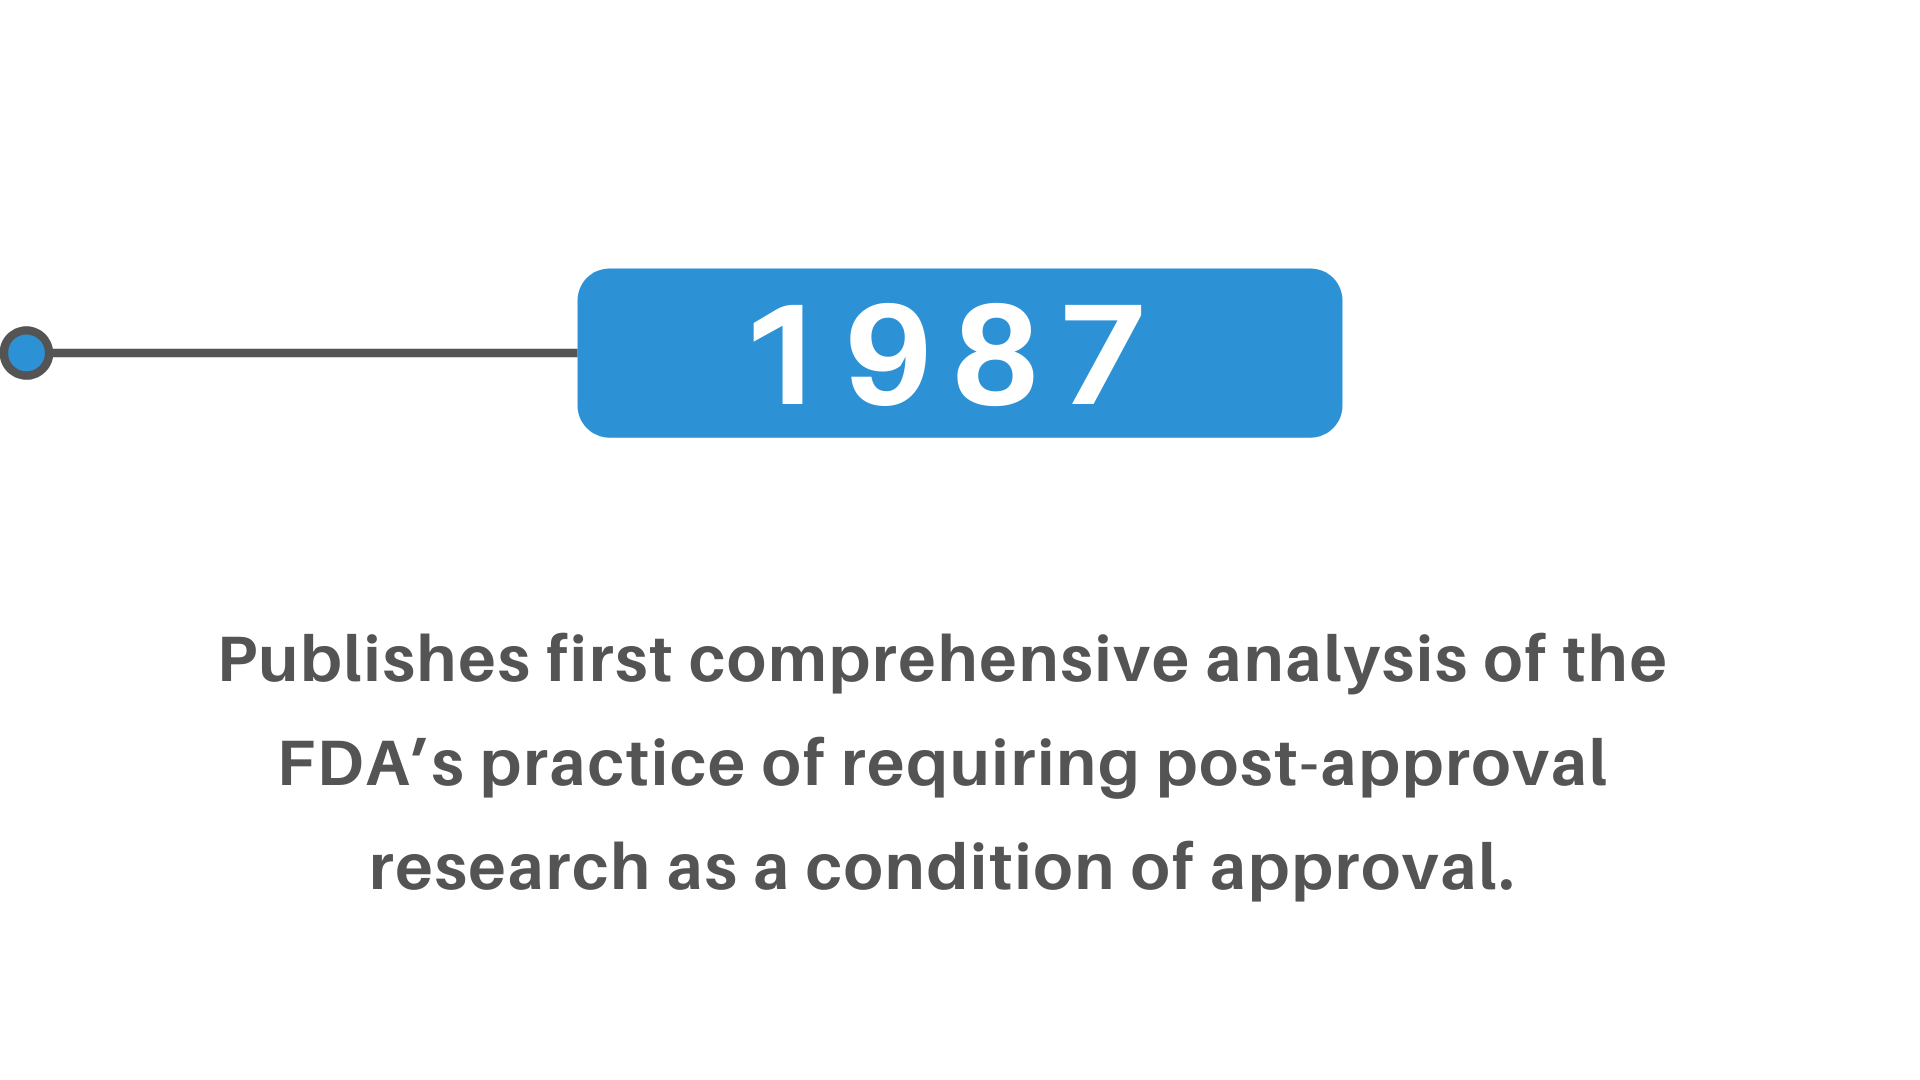 fda post-approval research